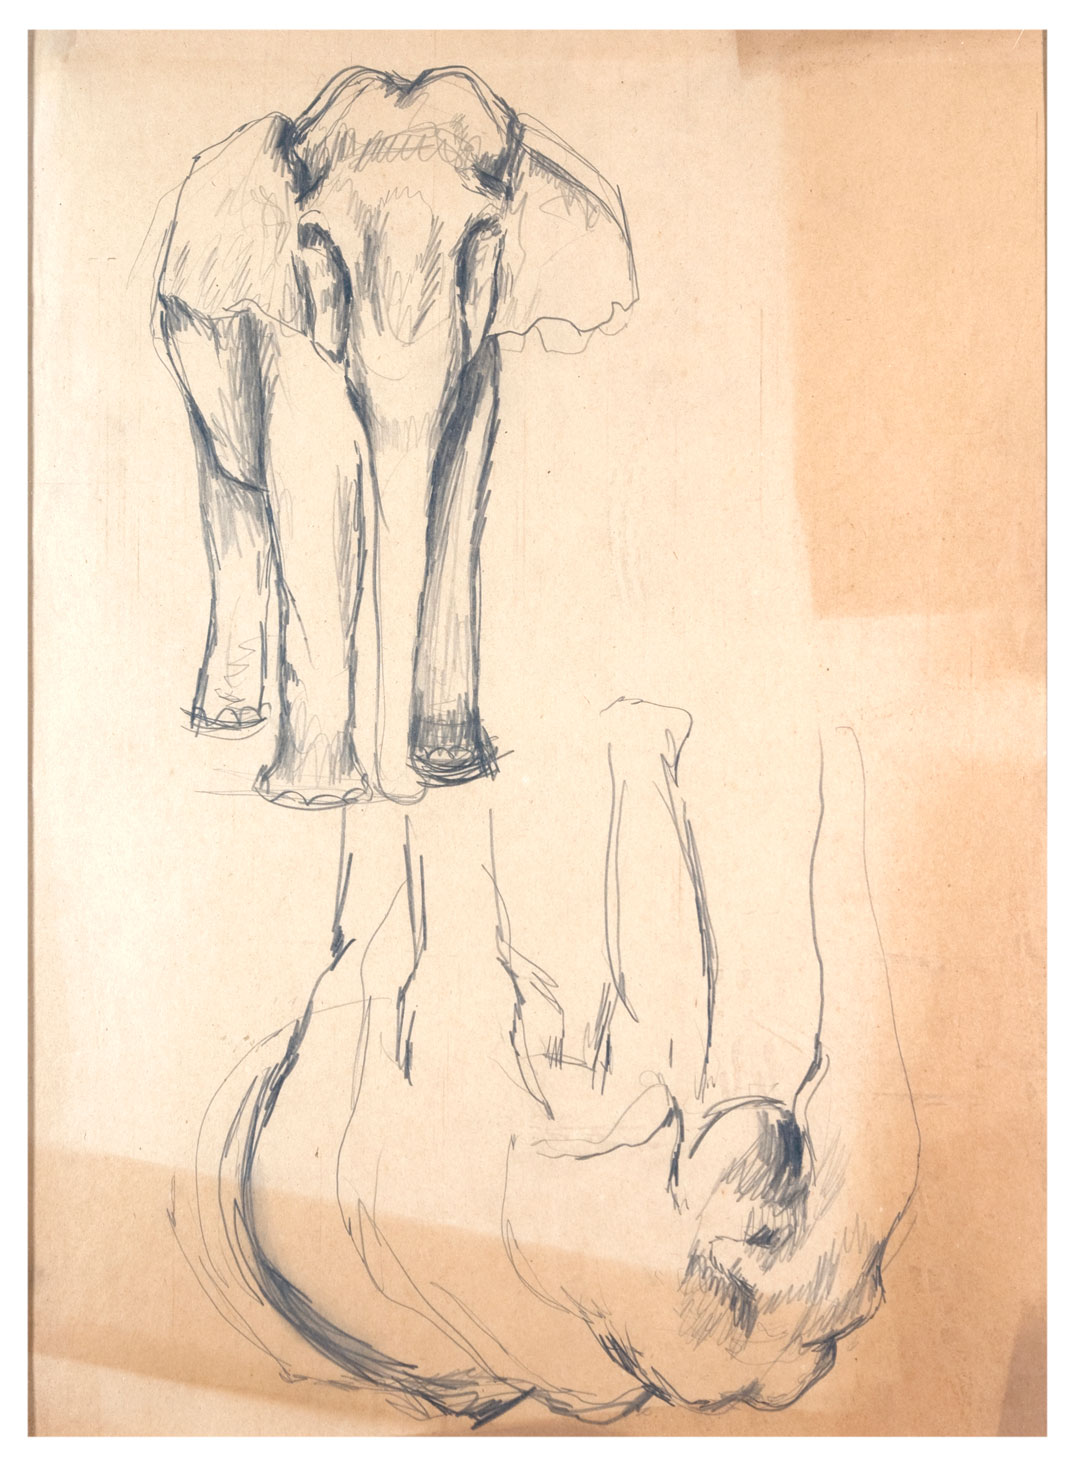 , Pencil on paper, 50.8x38.1cm, 1925, Private Collection